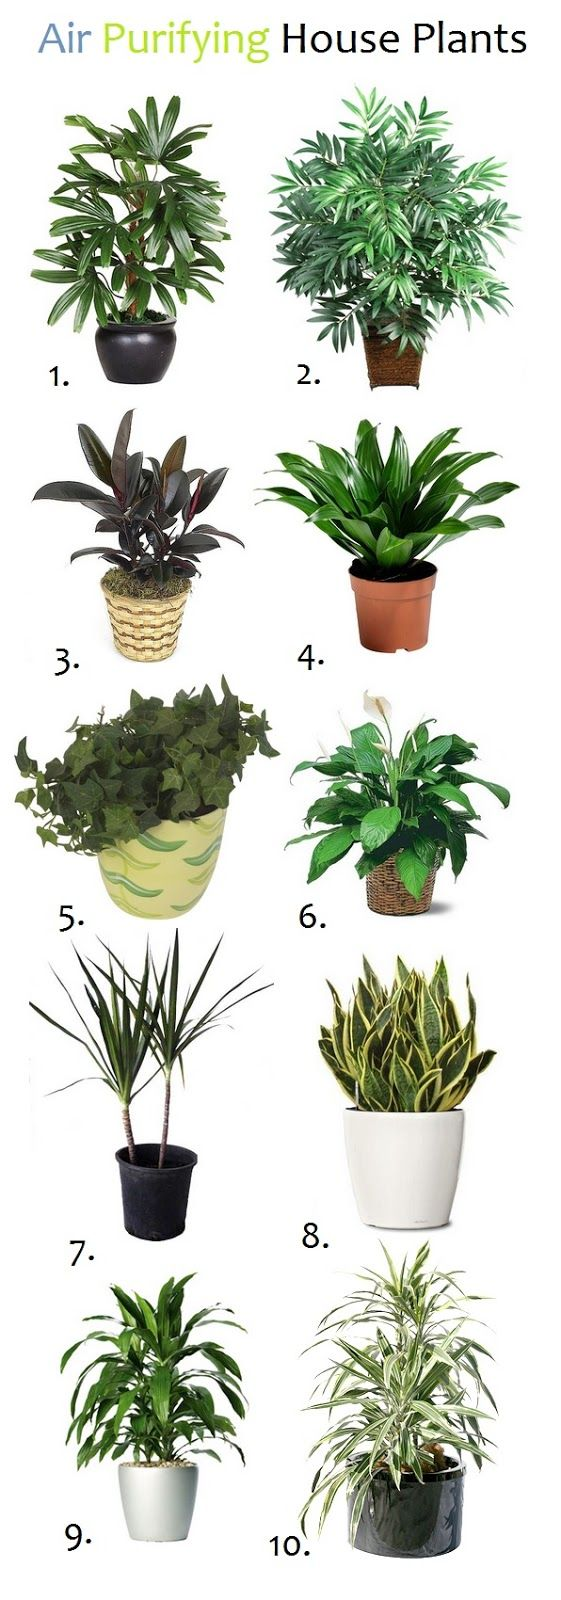 Best Air Purifying Plants | Plants, Best air purifying ... Nasa Best Plants For Home on best mulch for home, best trees for home, best solar system for home, best chairs for home, best pets for home, best fish for home, best dogs for home, best light for home, best flowers for home, best lighting for home, best lucky plant,